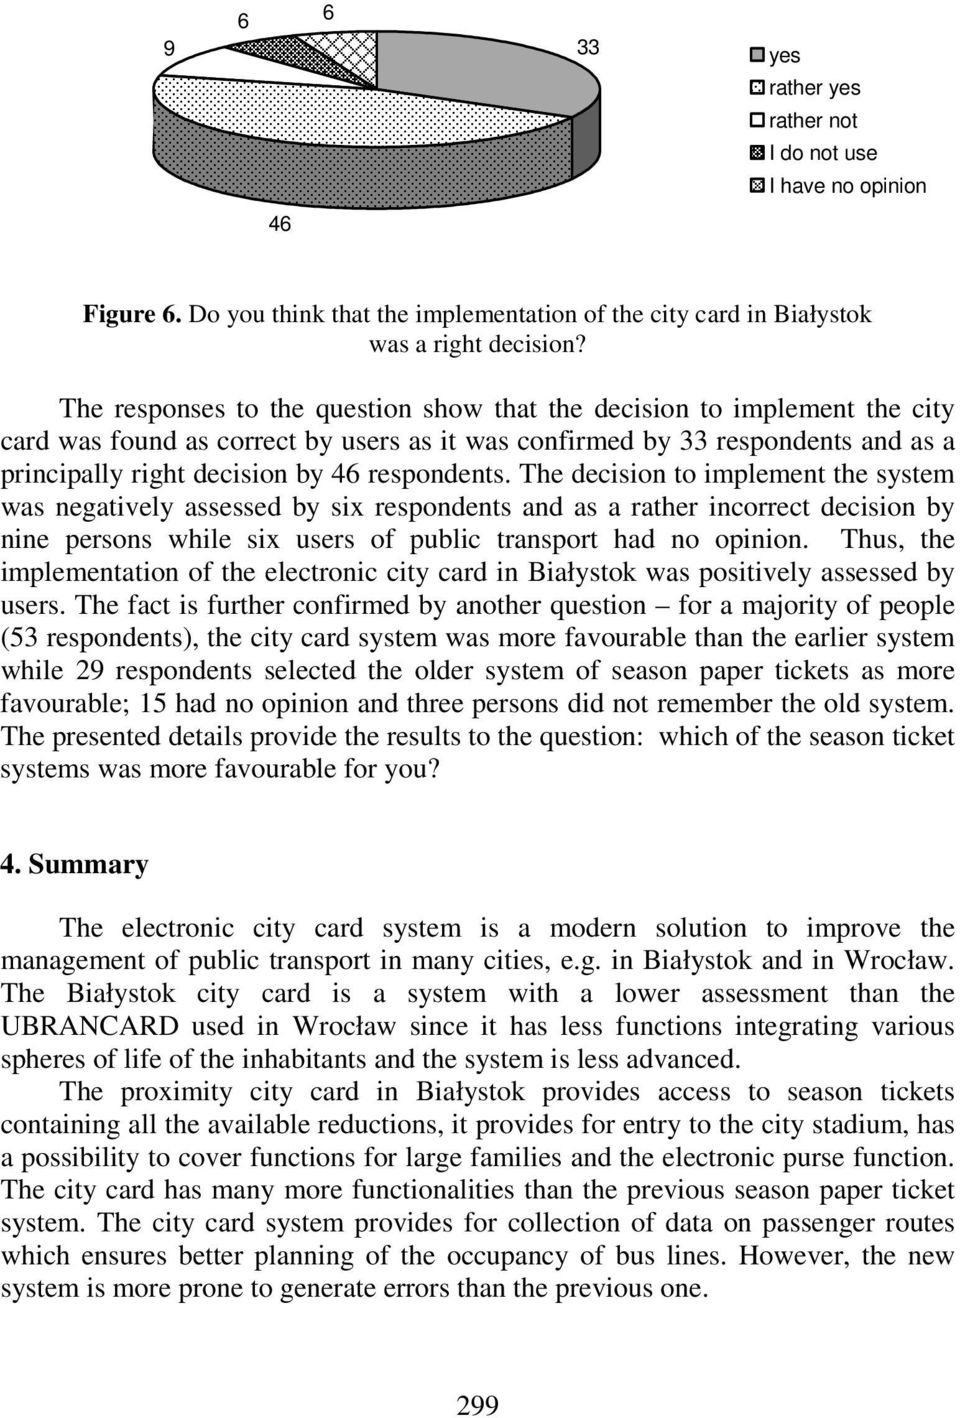 respondents. The decision to implement the system was negatively assessed by six respondents and as a rather incorrect decision by nine persons while six users of public transport had no opinion.